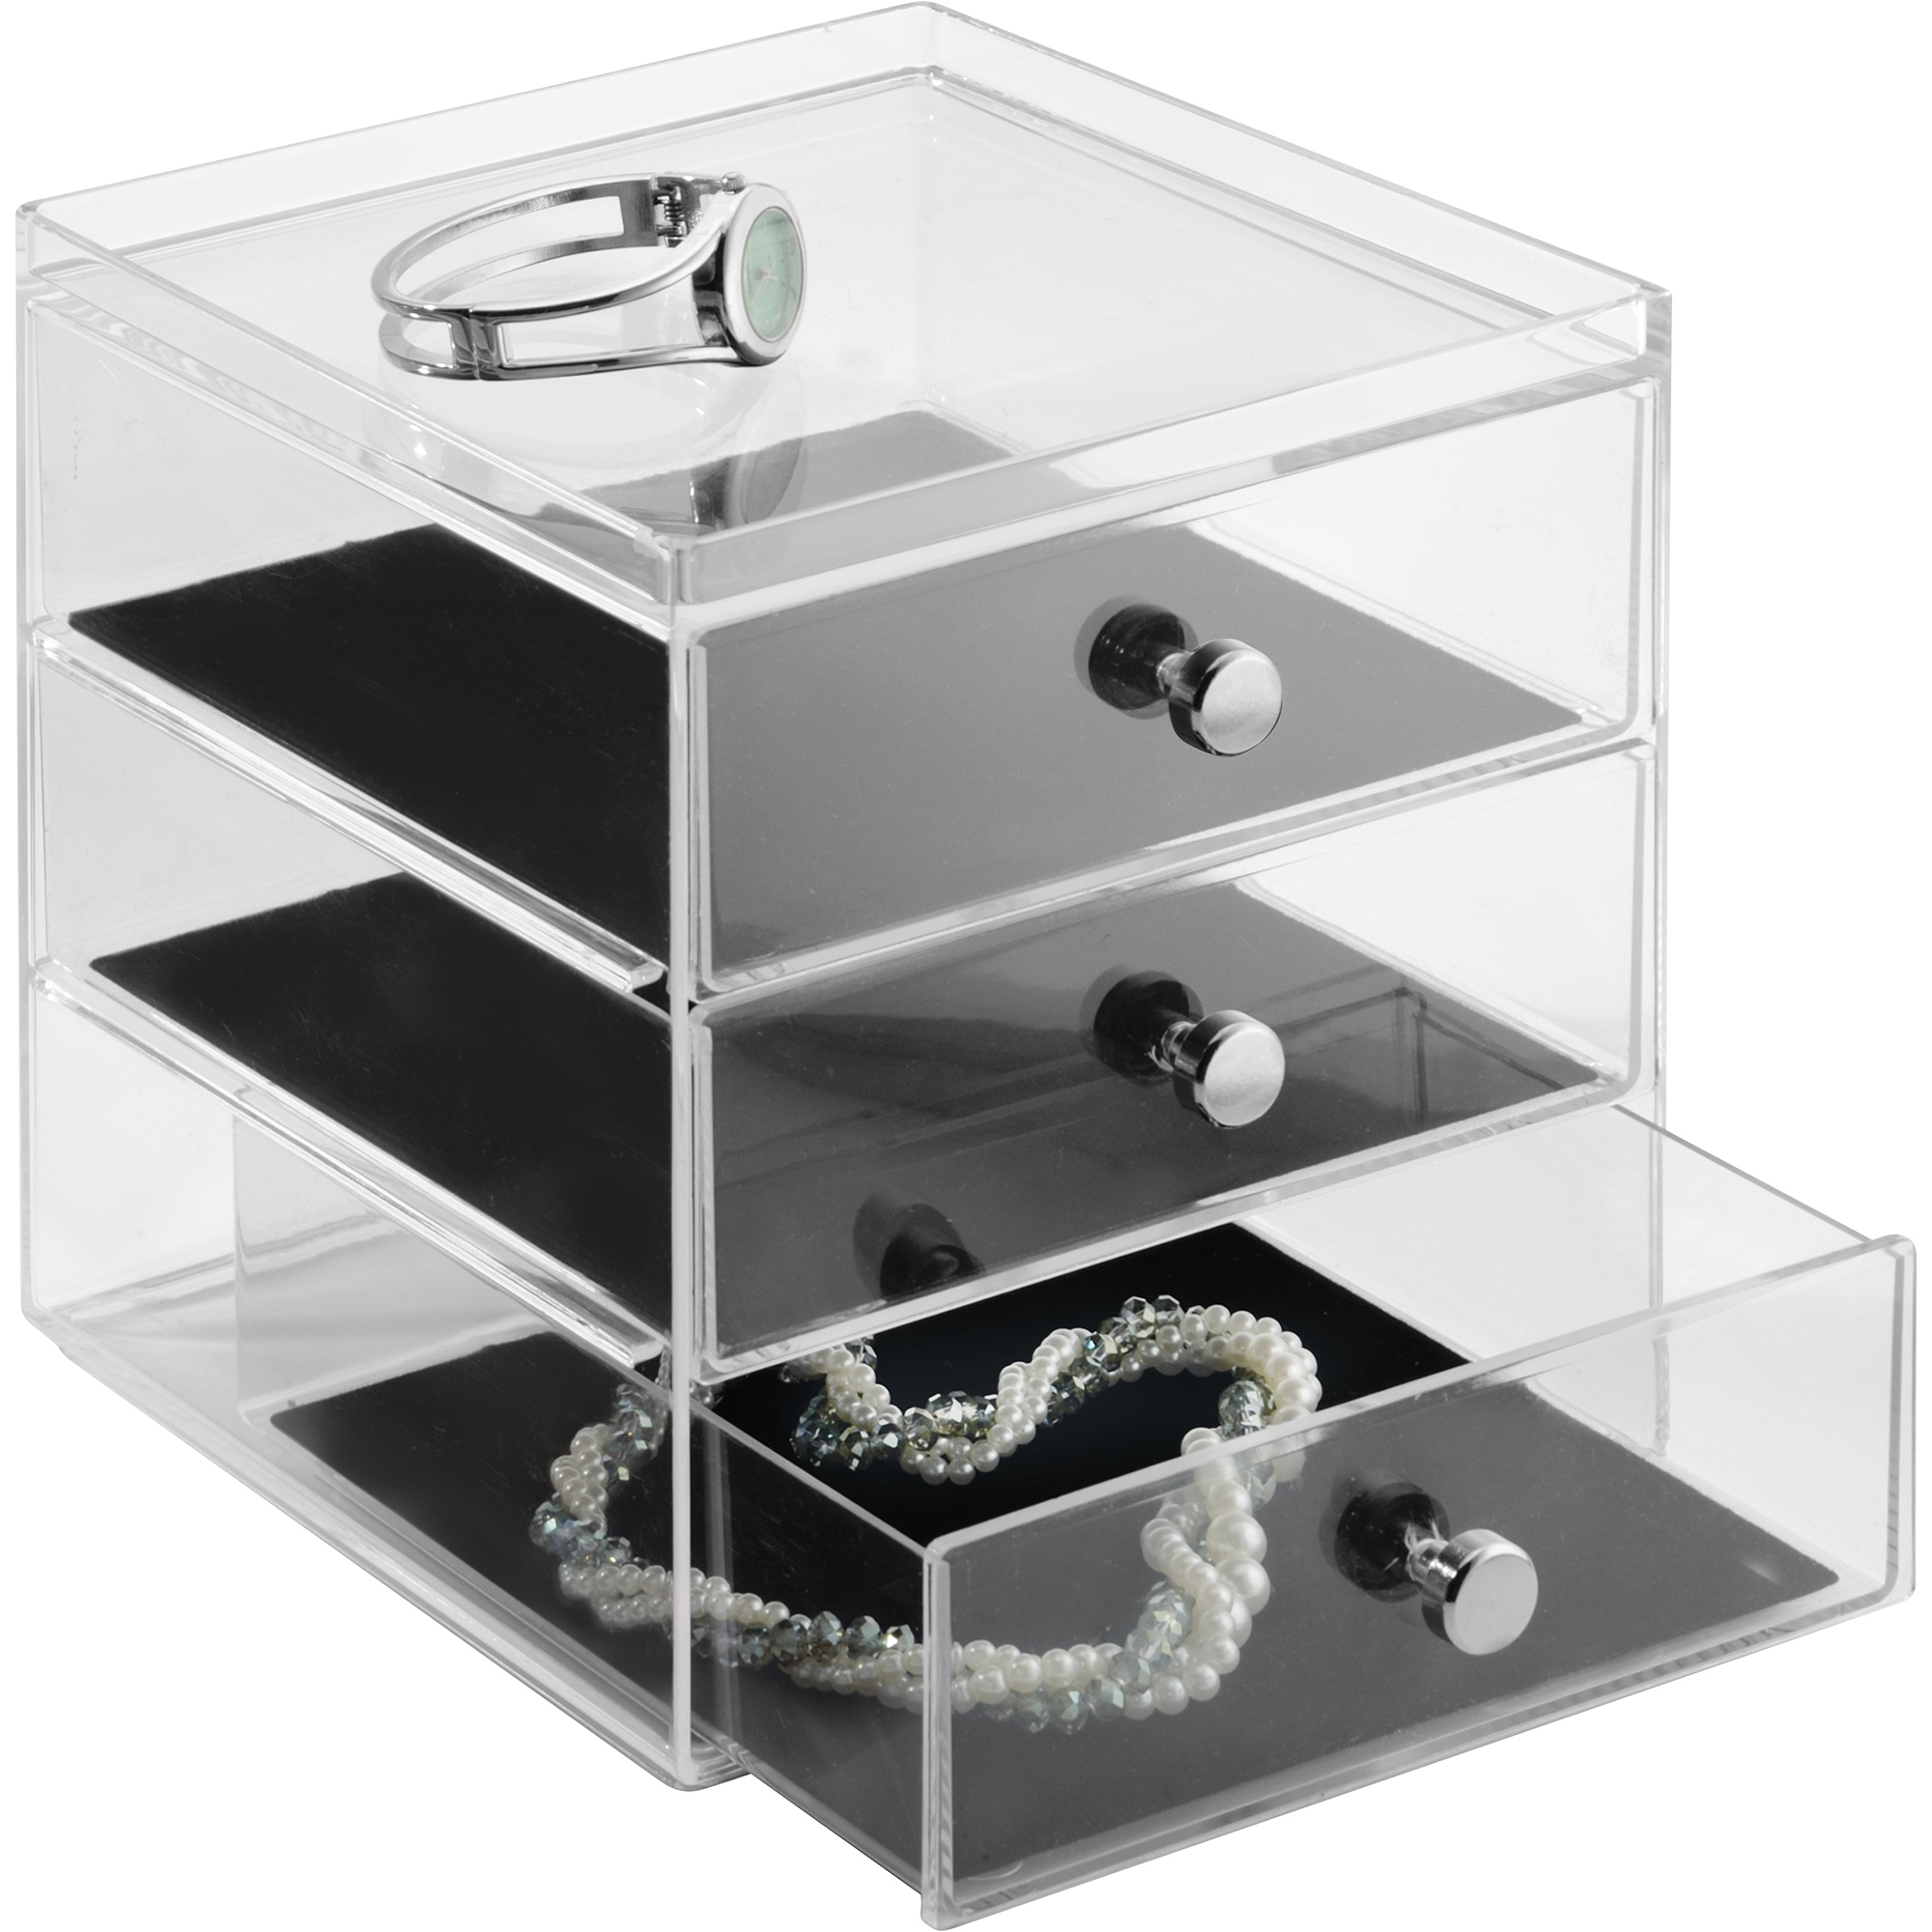 InterDesign Clarity Fashion Jewelry Organizer for Rings, Earrings, Bracelets, Necklaces, 3-Drawer, Clear/Black